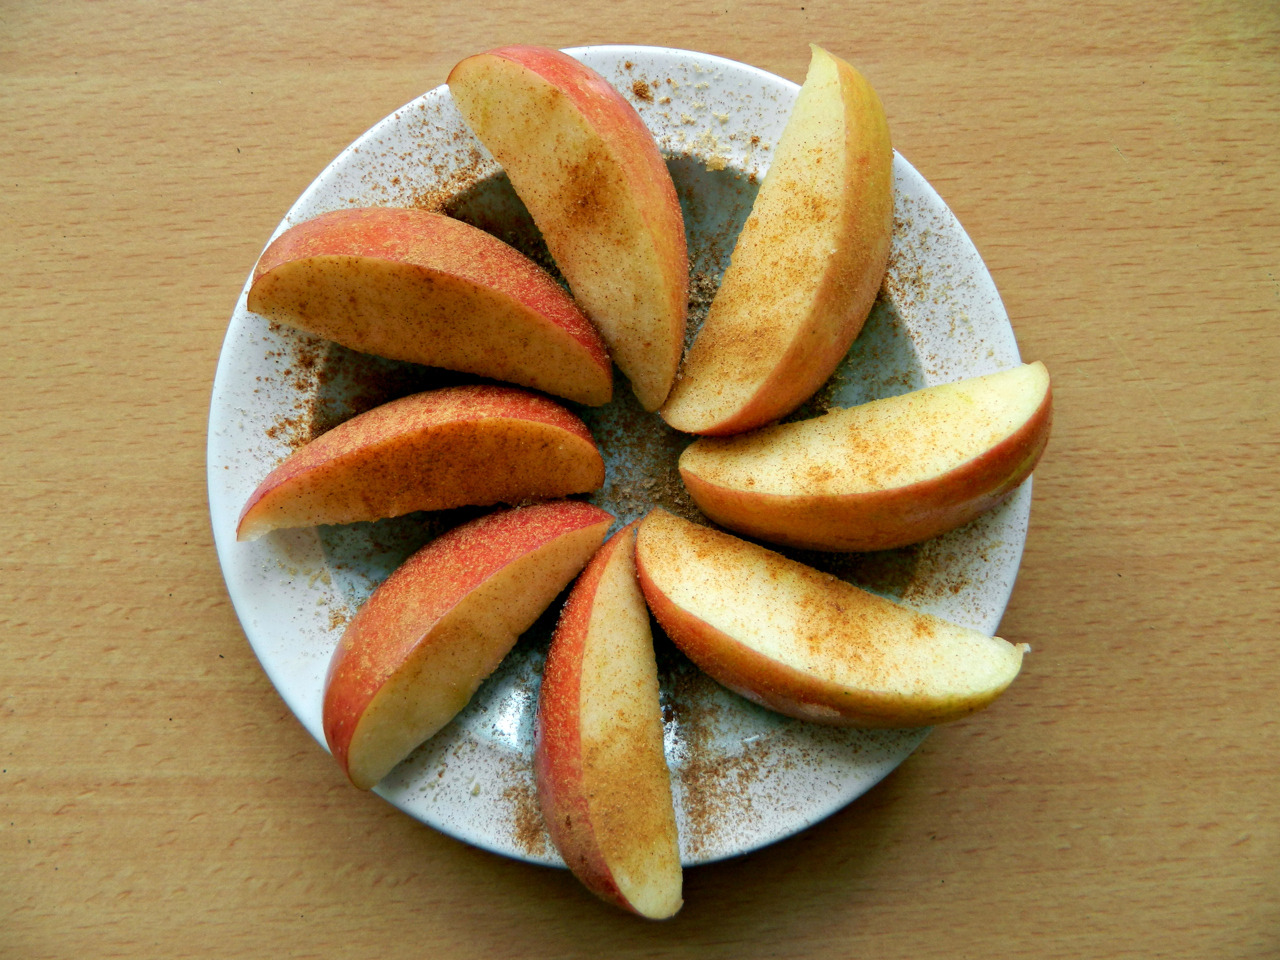 Sliced Braeburn apple with cinnamon, brown sugar and lemon juice. Dee-lish!